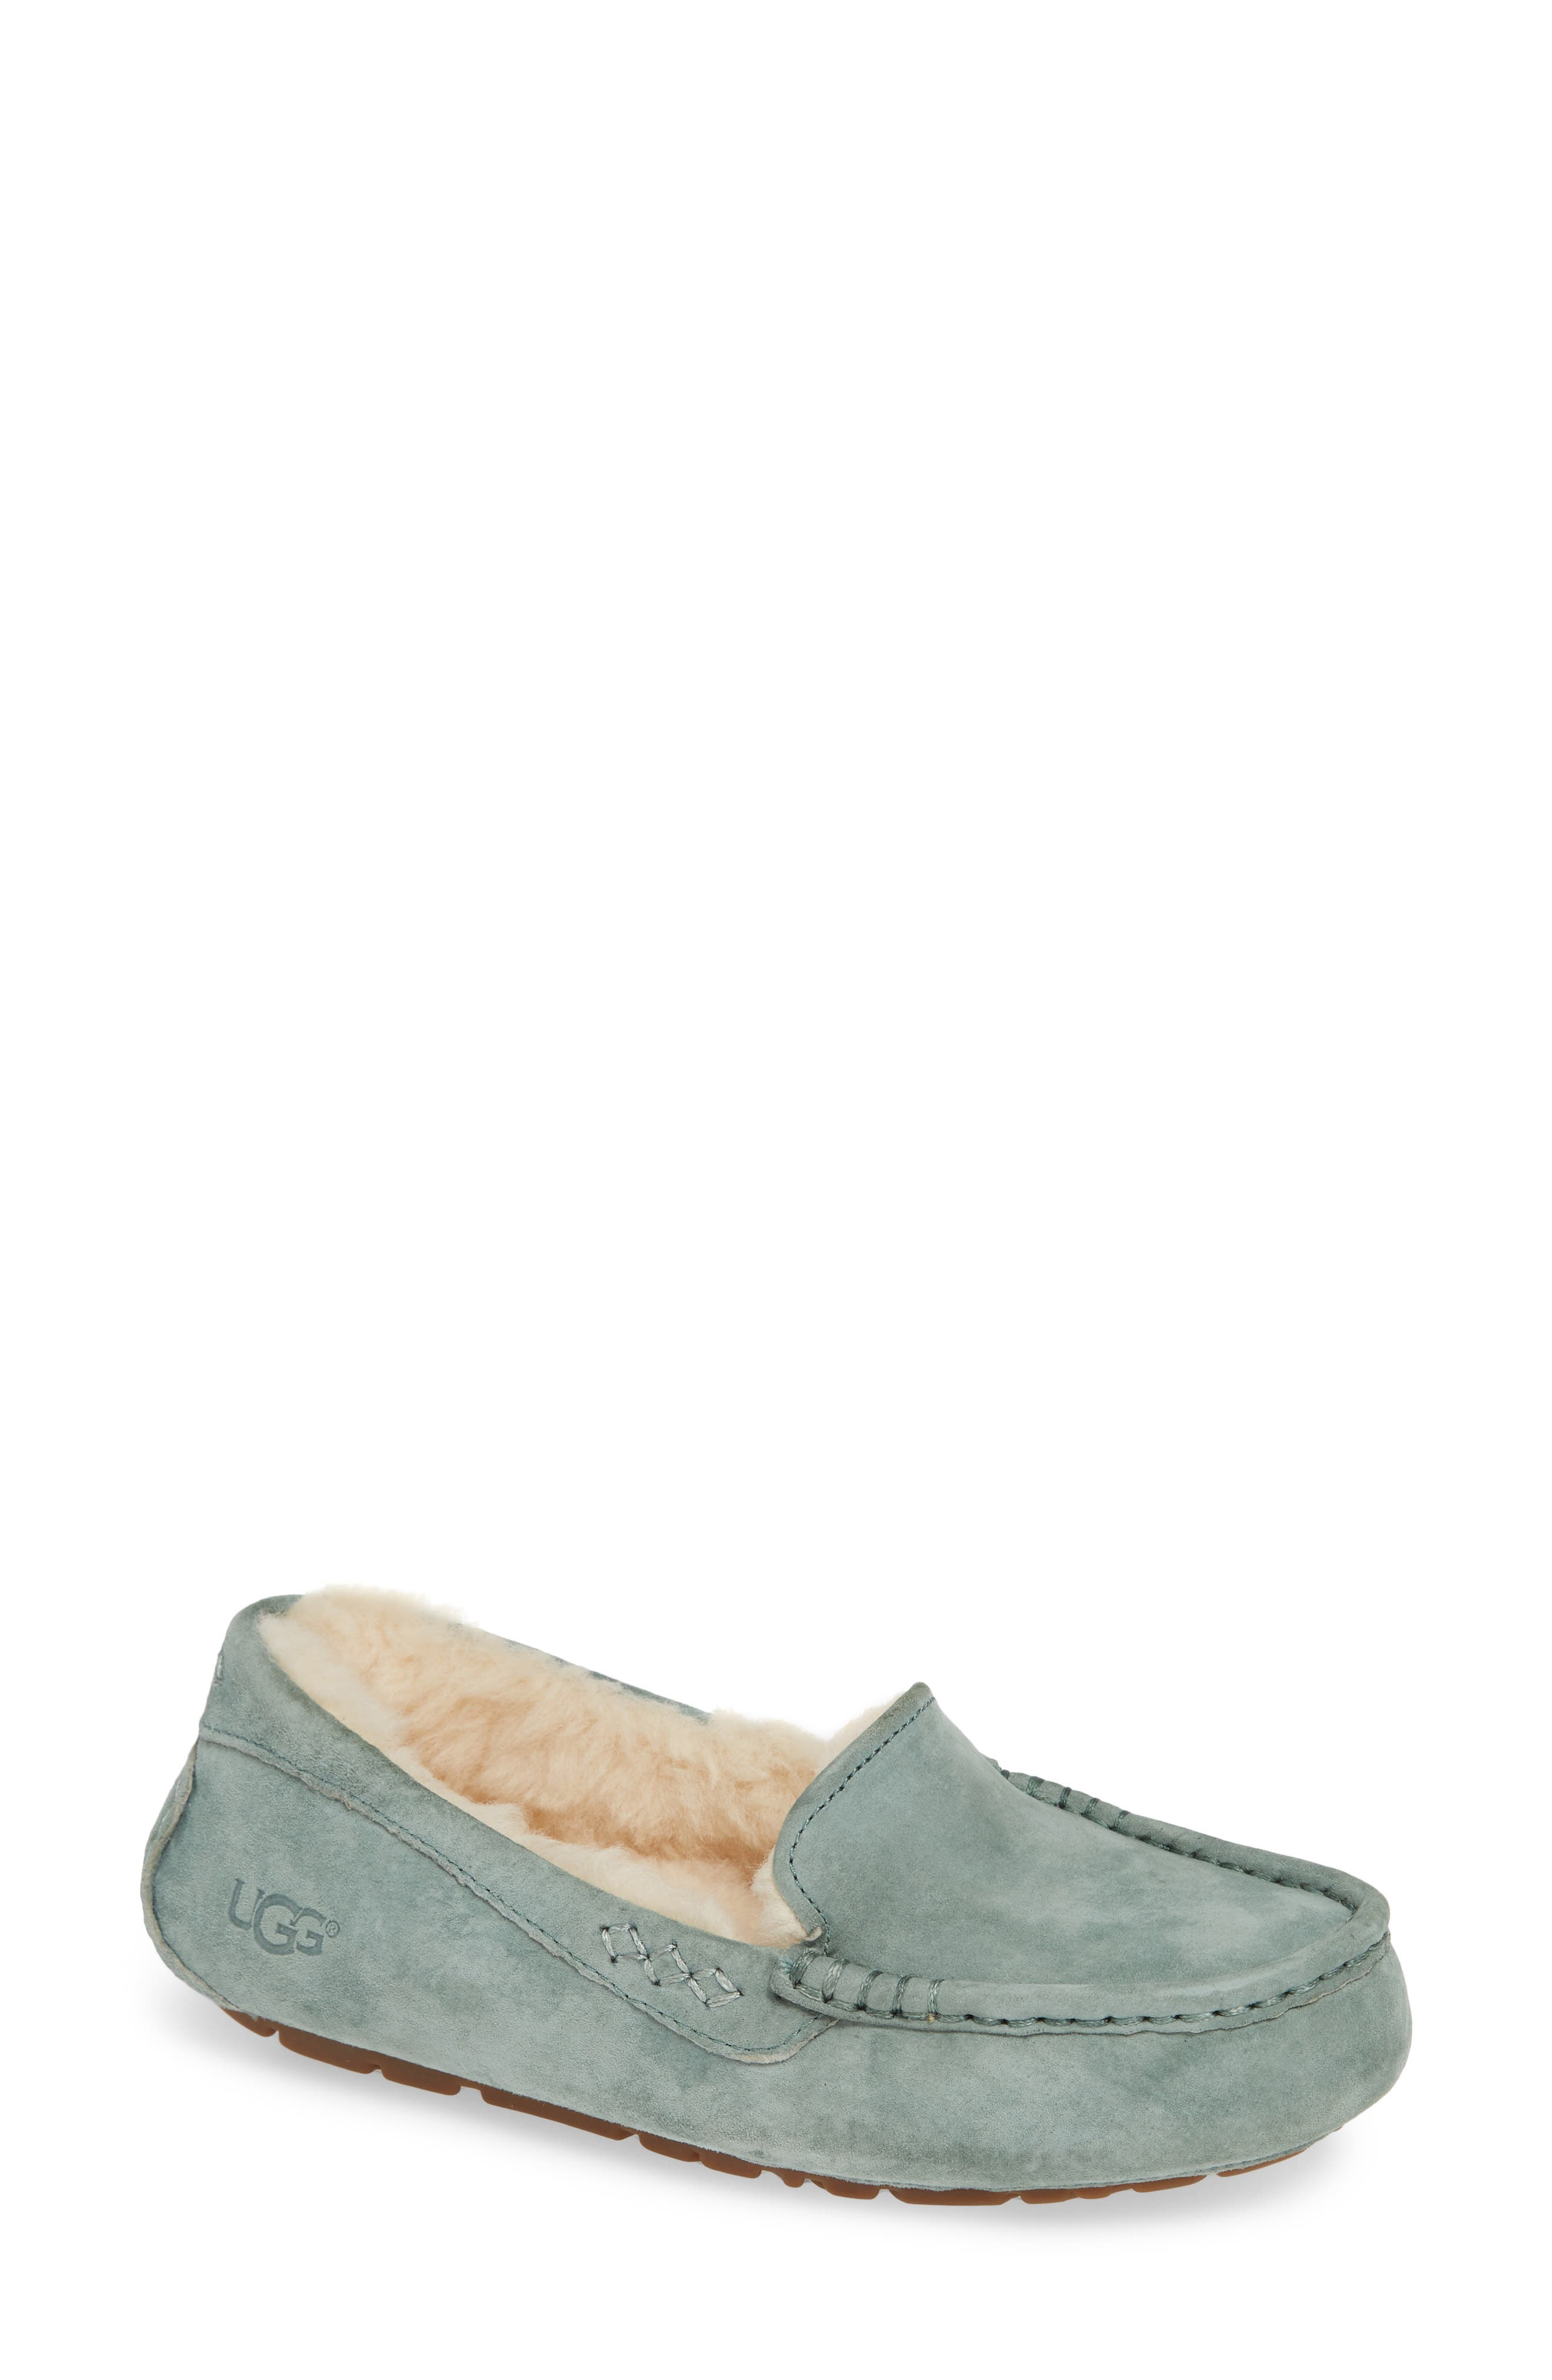 Ugg Ansley Water Resistant Slipper, Green